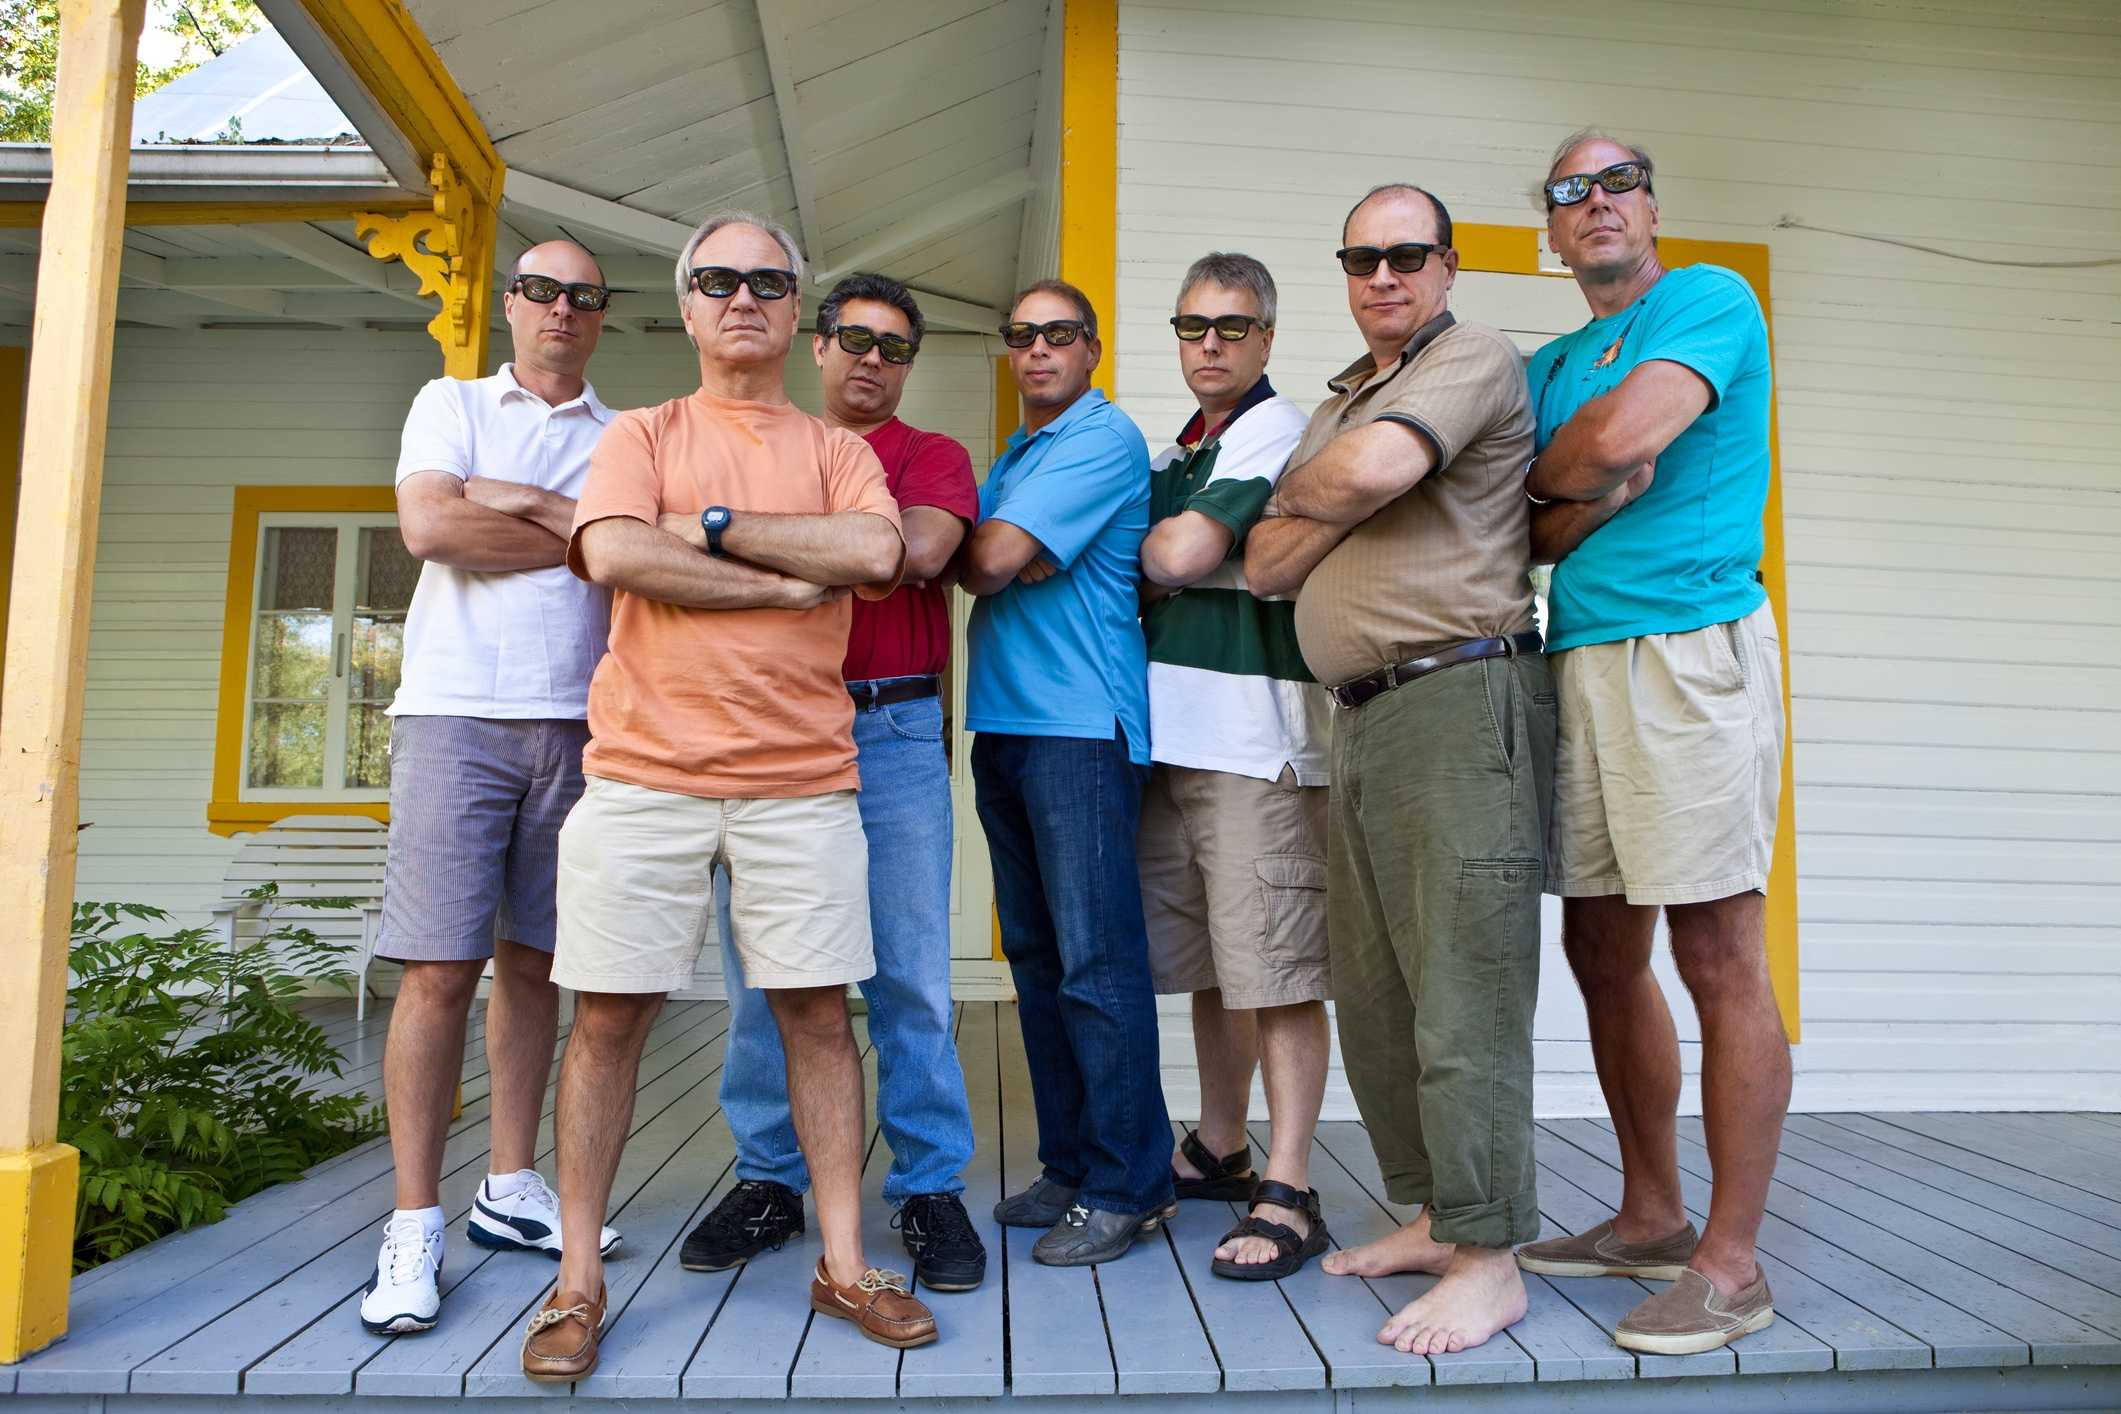 Bachelor Party Group